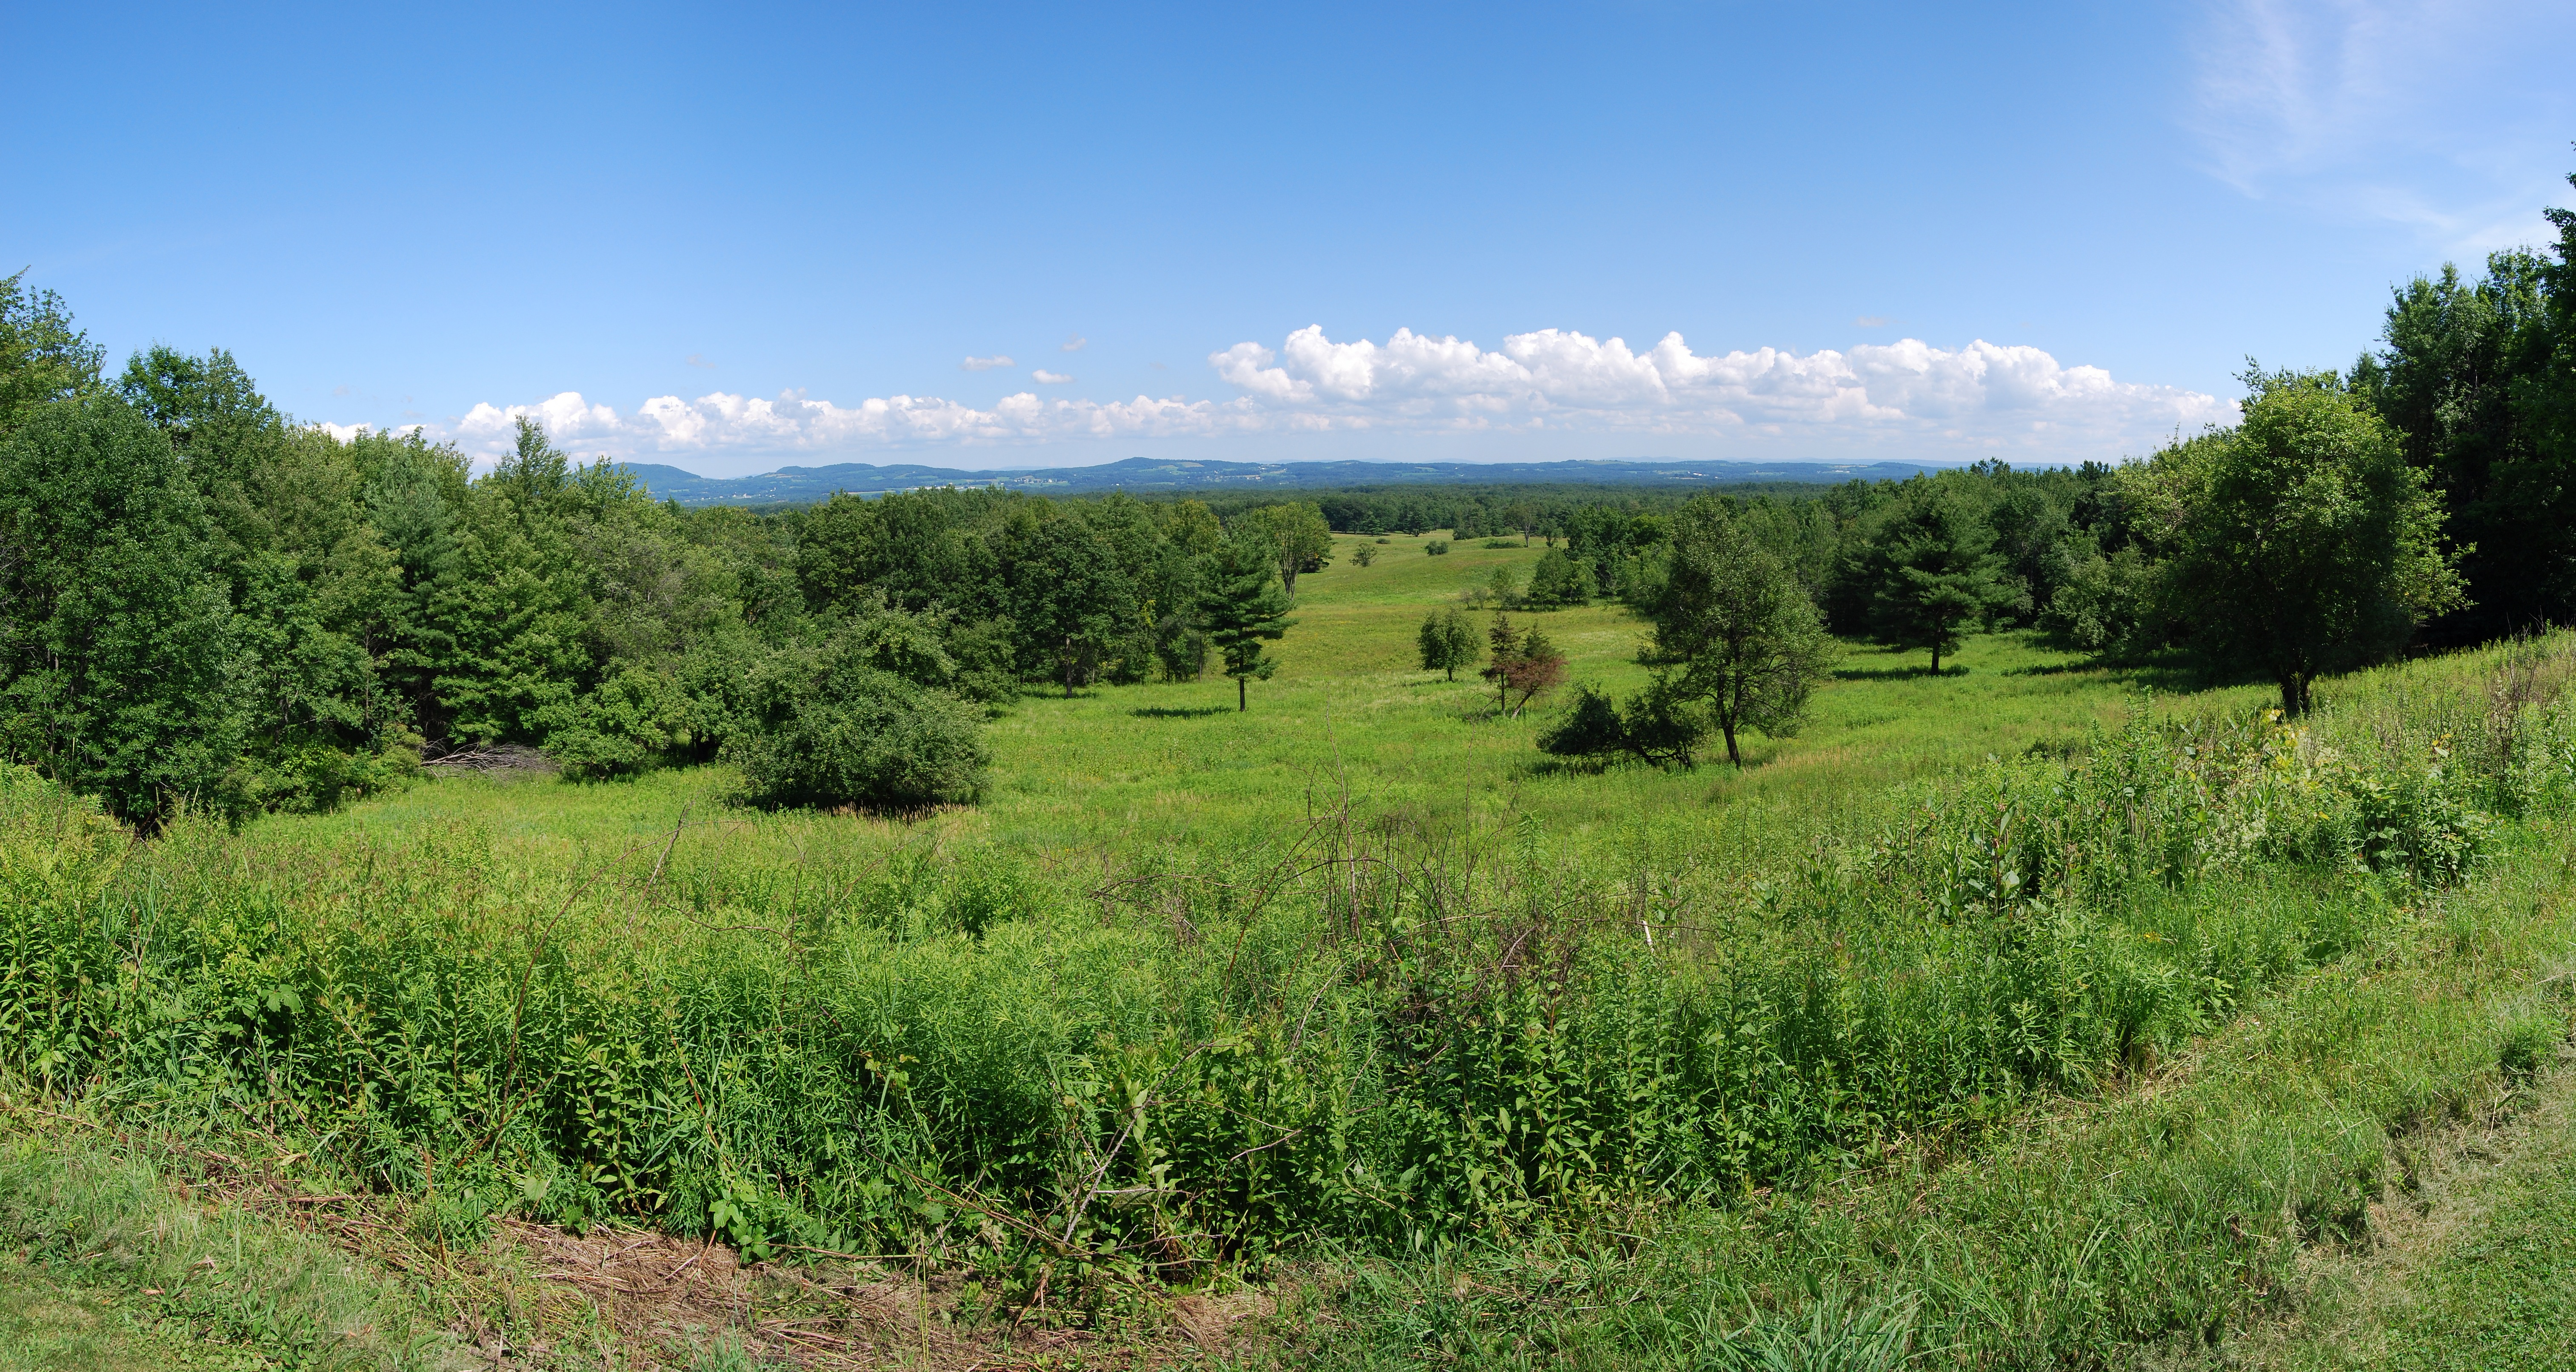 The Saratoga Battlefield (Image: Matt Wade, UpstateNYer)